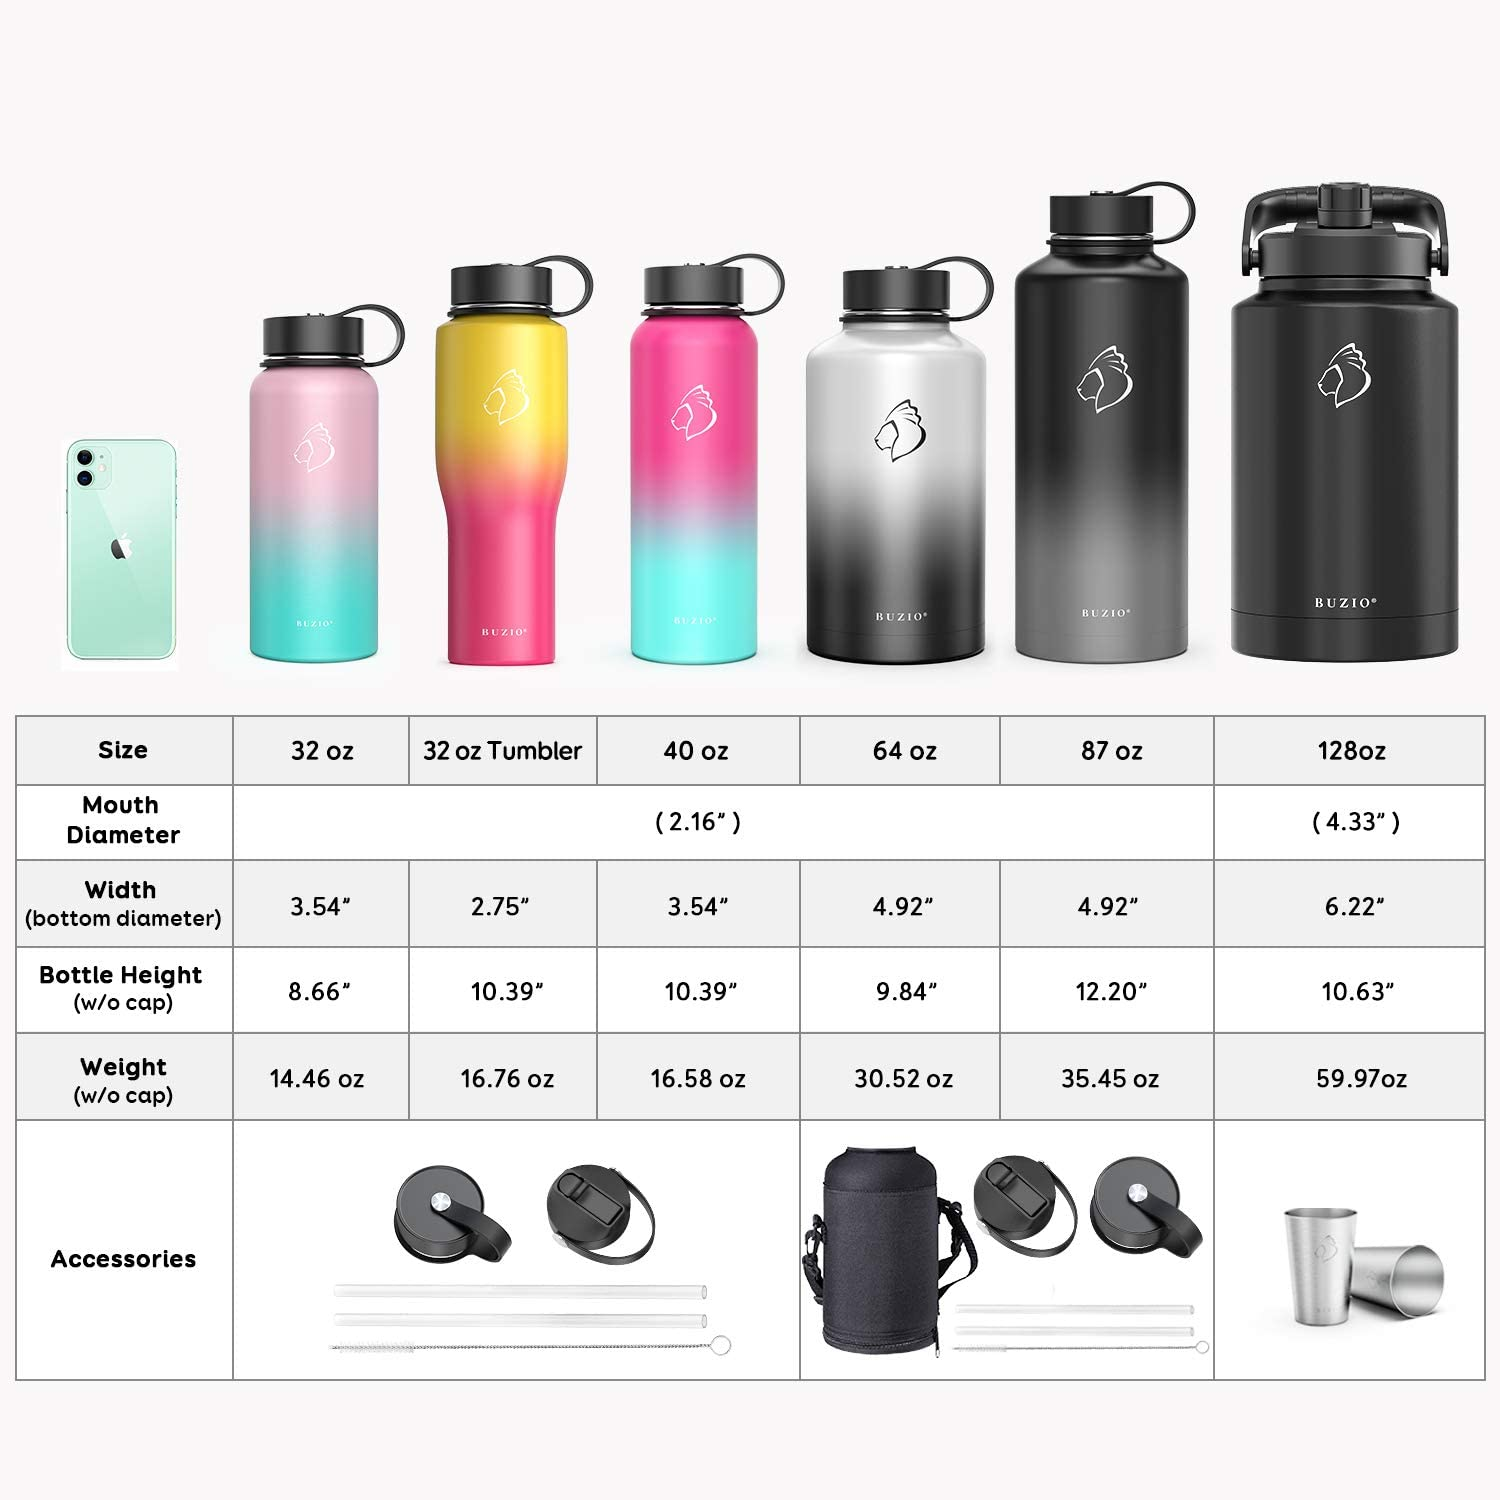 64oz 40oz Cold for 48 Hrs Hot for 24 Hrs Simple Thermo Canteen Mug 32oz BUZIO Insulted Water Bottle with Straw Lid and Flex Cap 87oz Modern Double Vacuum Stainless Steel Water Flask 22oz